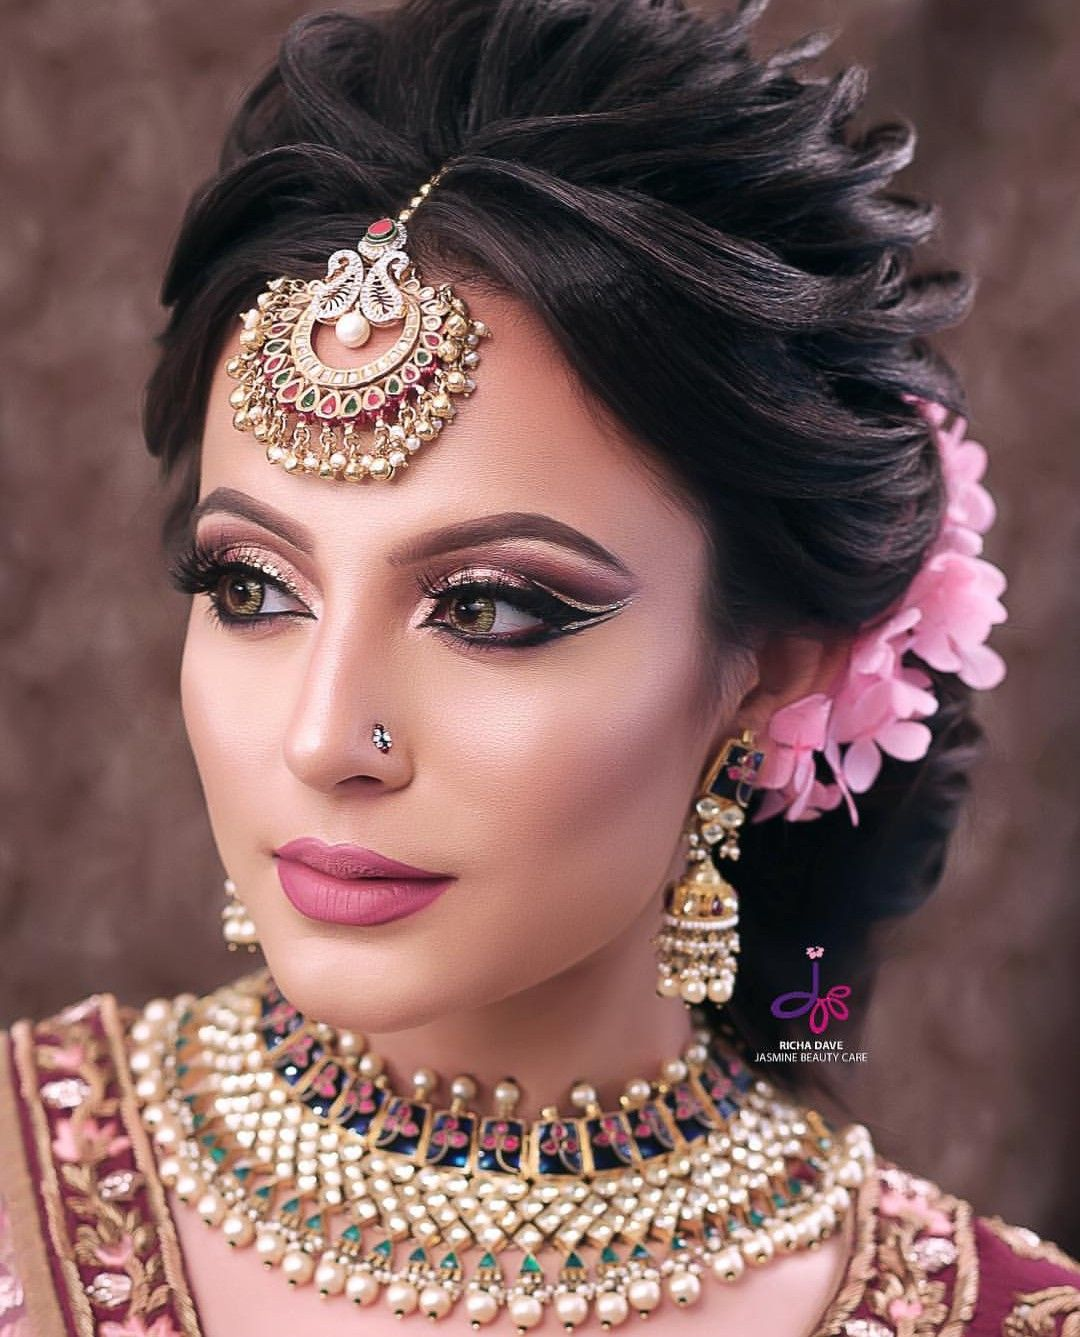 shikachand Indian wedding hairstyles